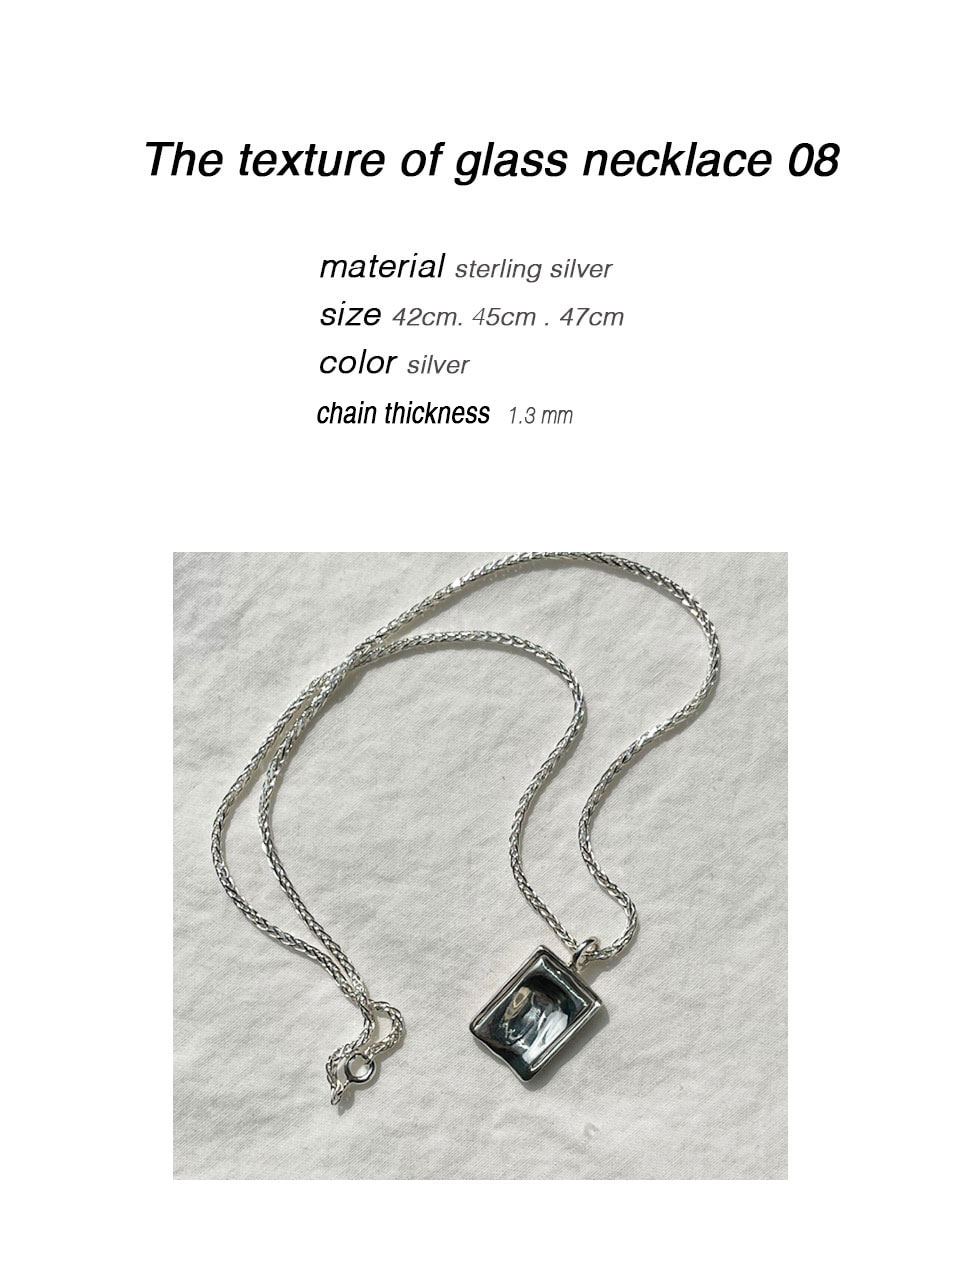 이오유스튜디오(EOU STUDIO) The texture of glass Necklace 08